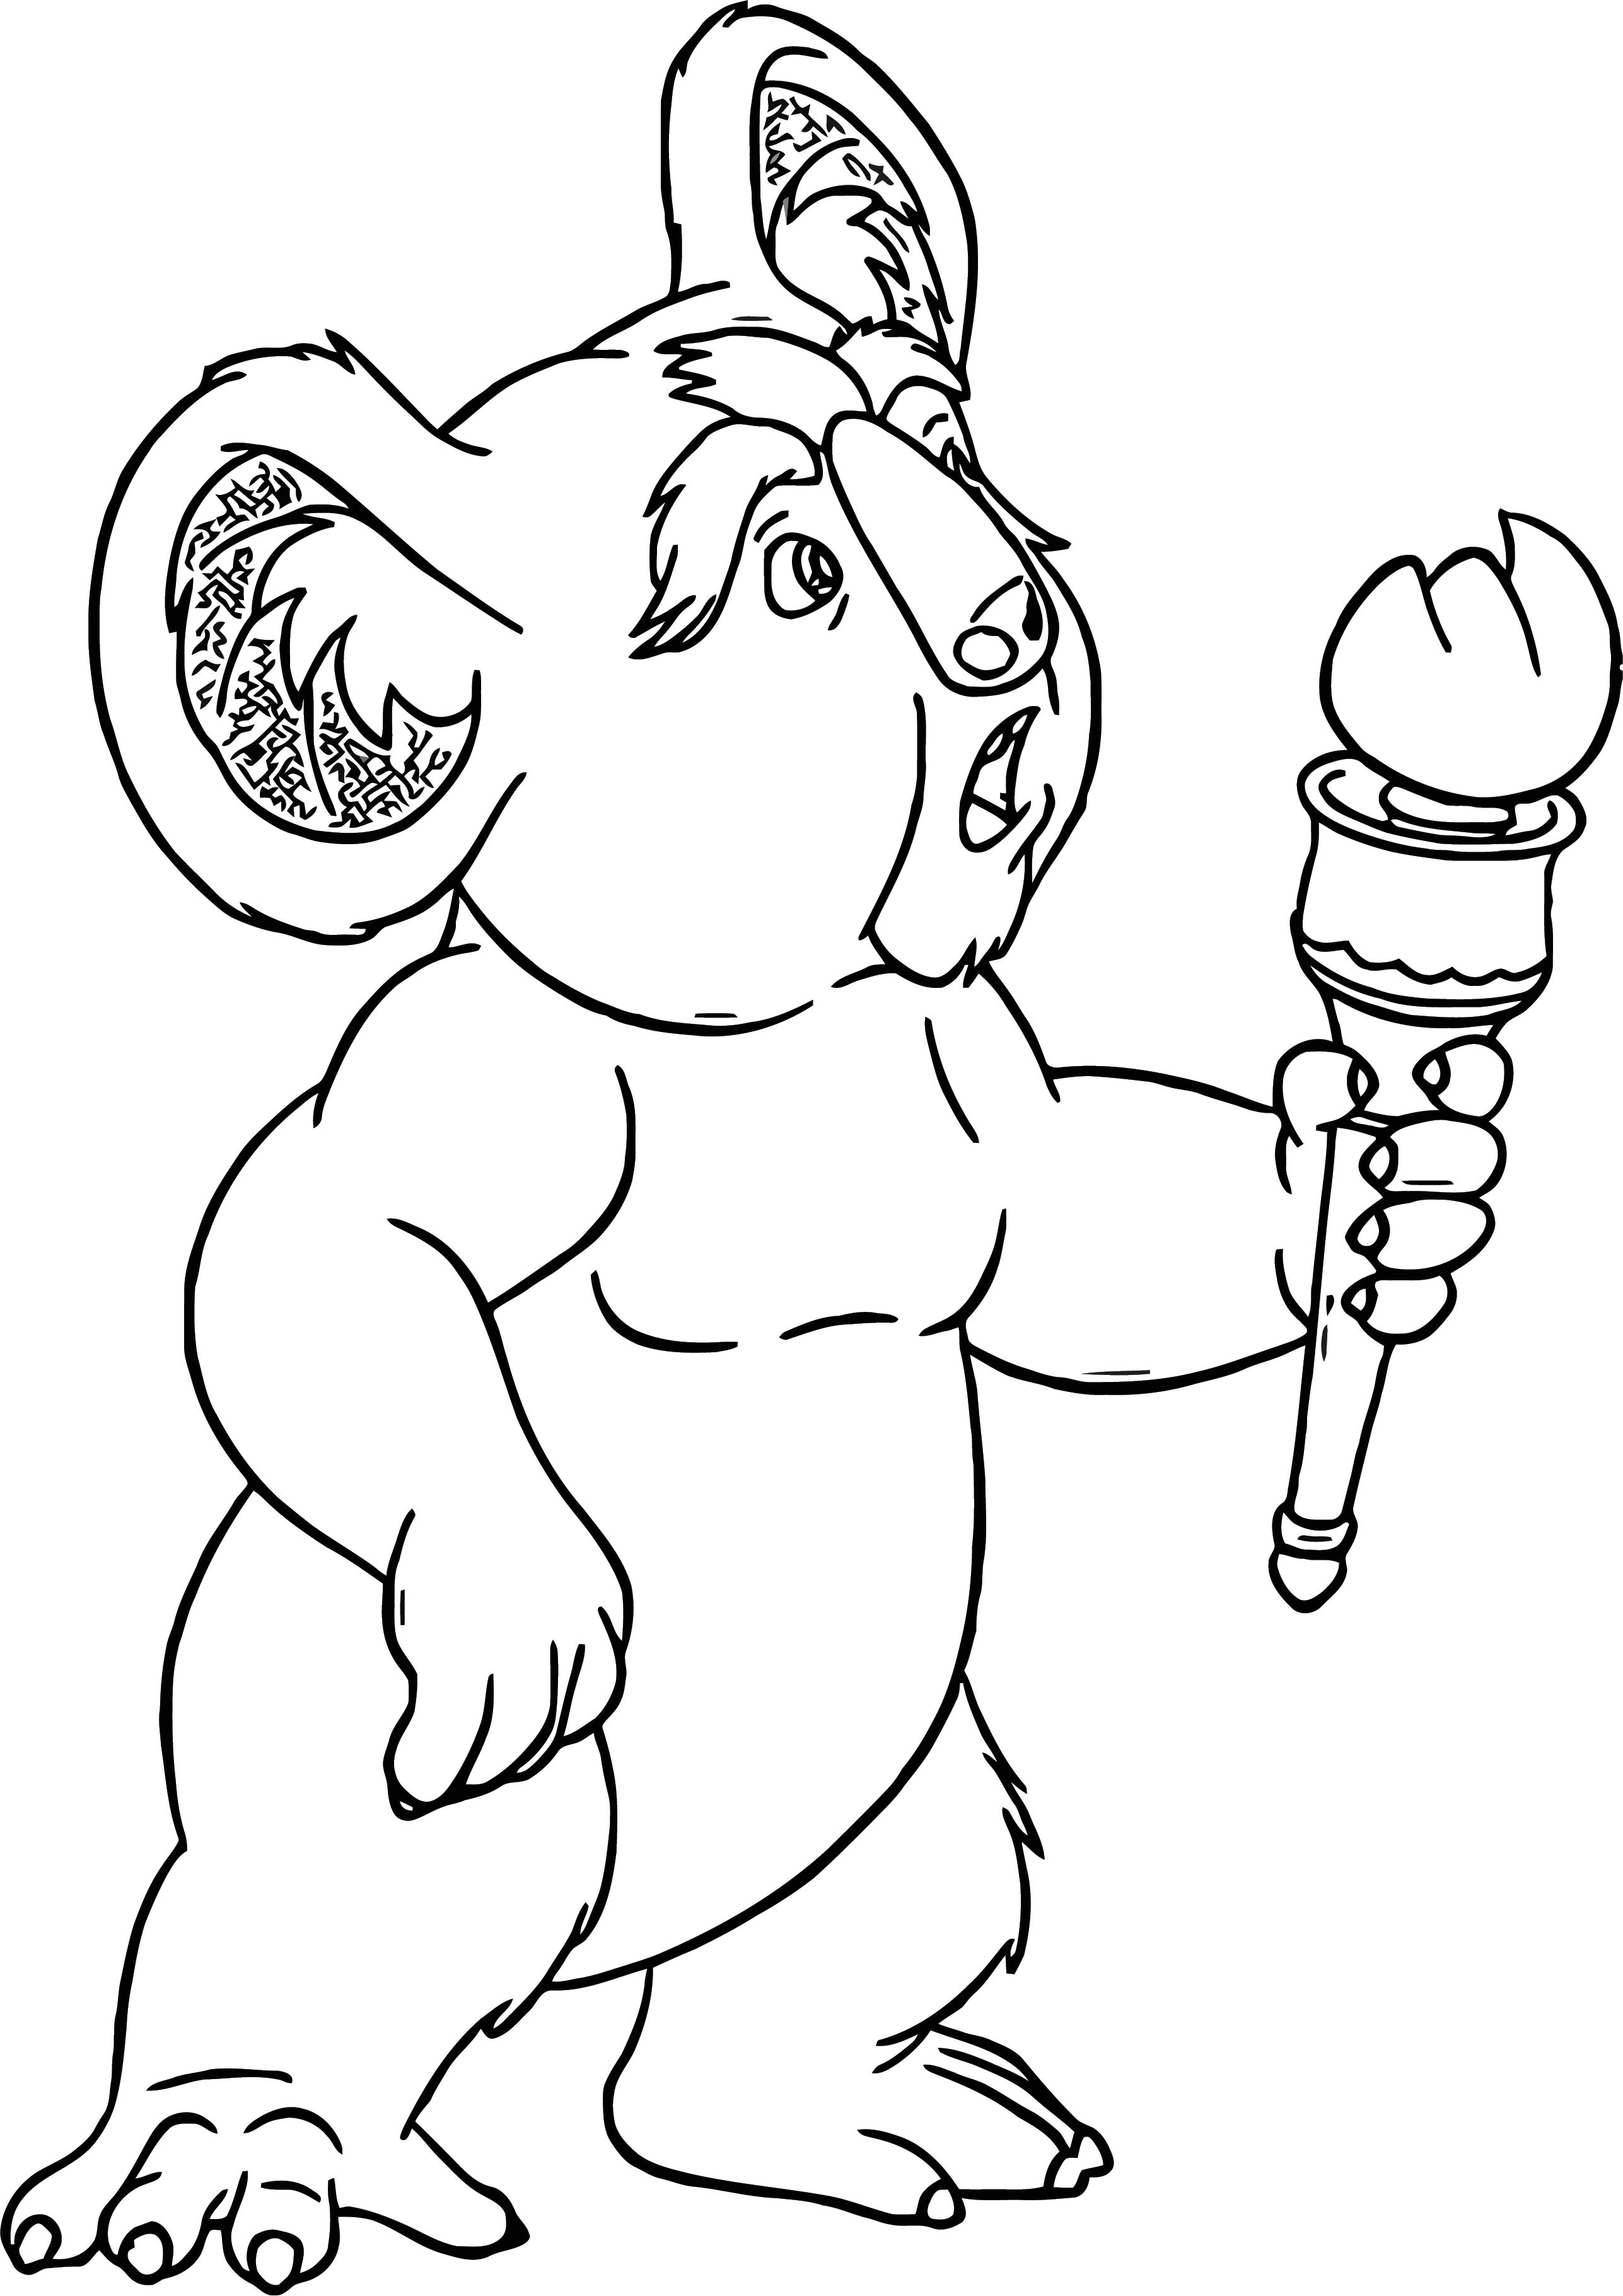 Disney The Wild Coloring Pages 15